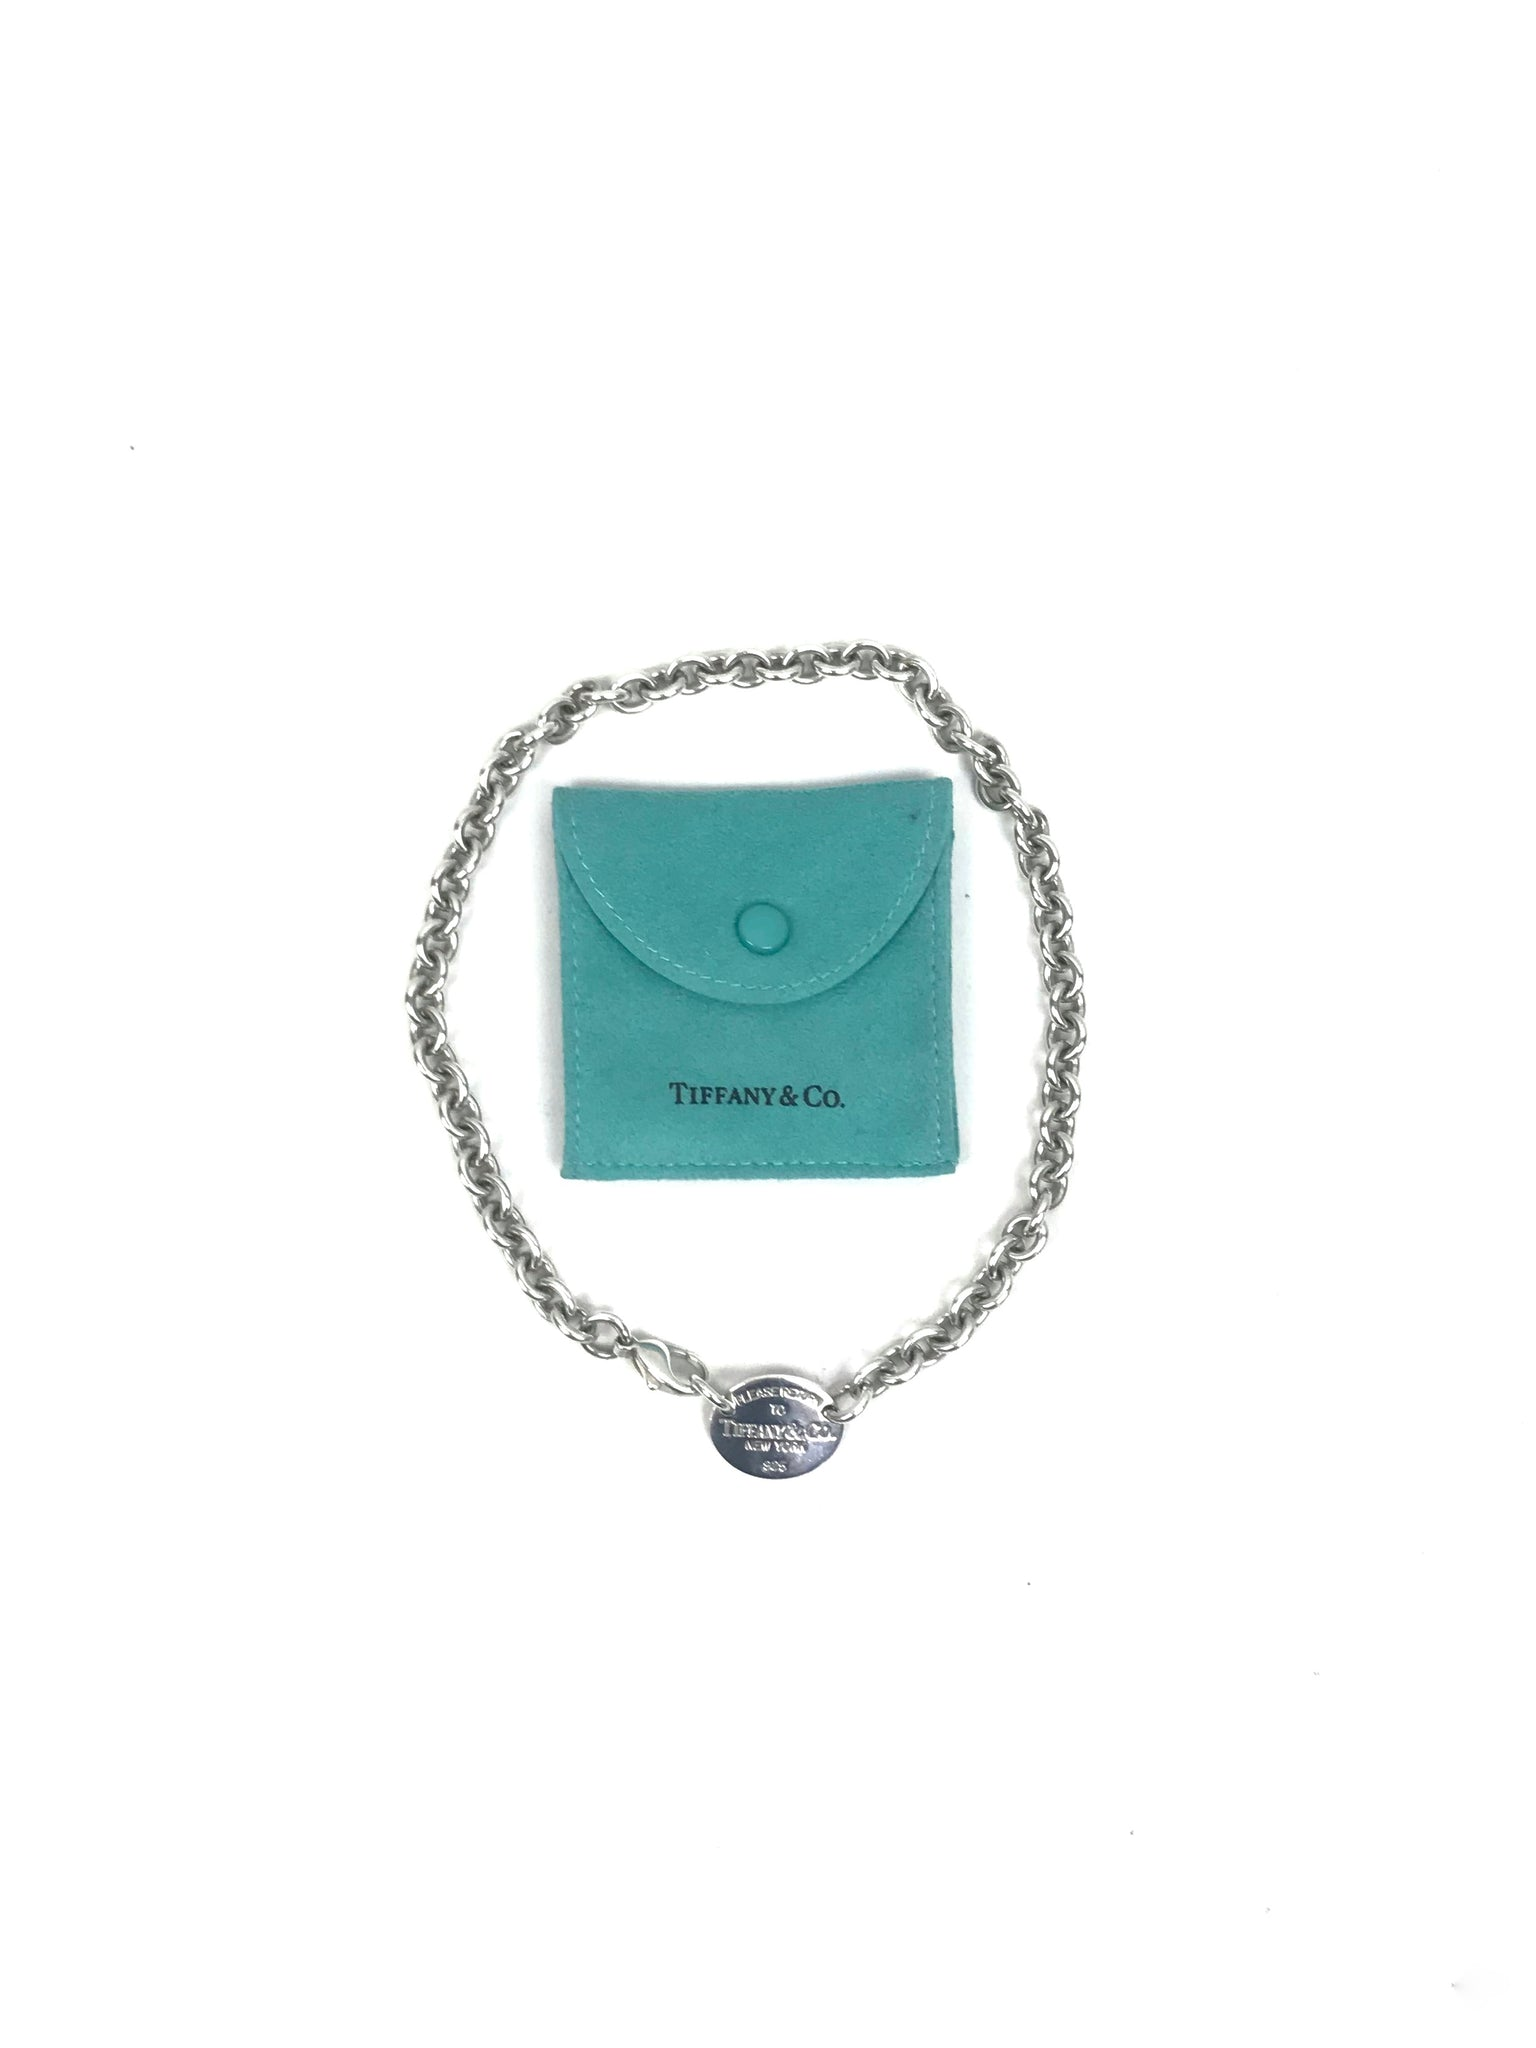 Tiffany and Co. sterling silver oval tag chain choker